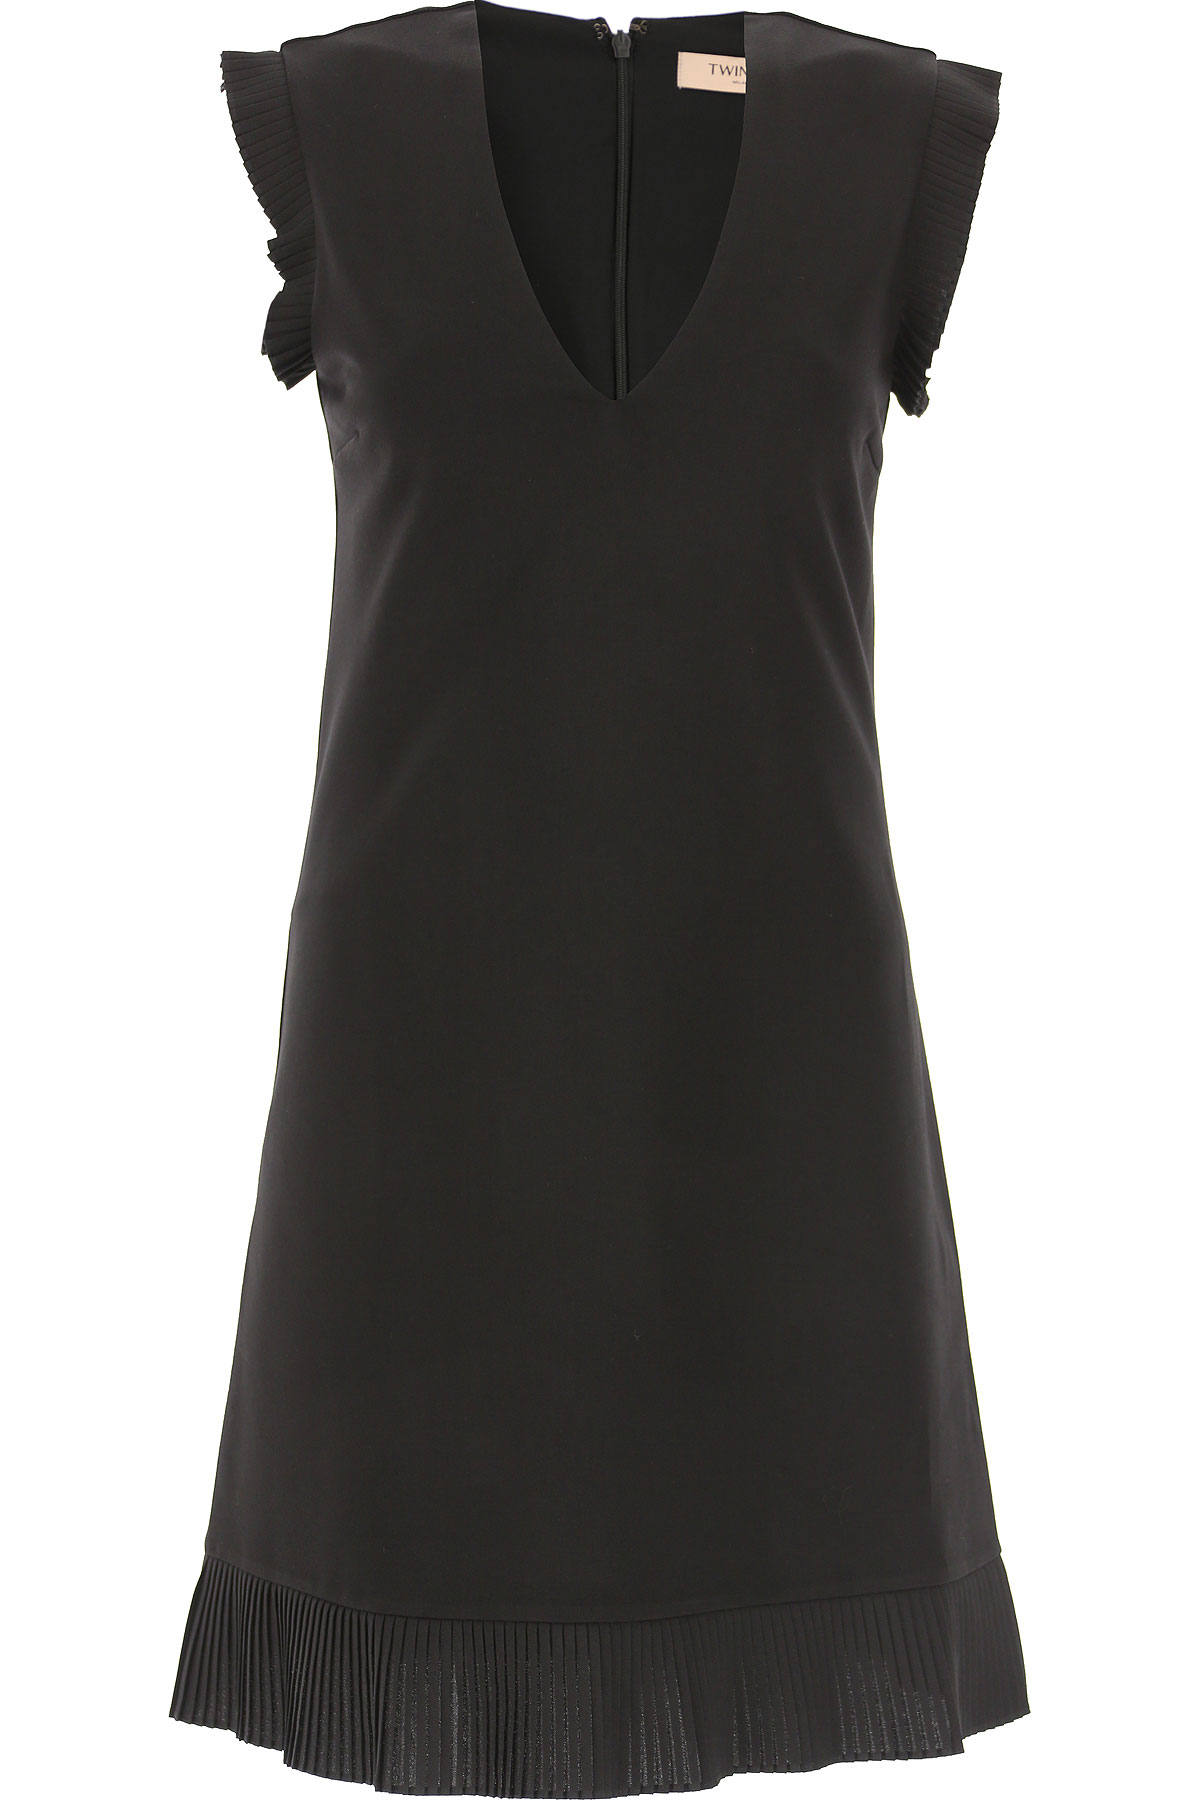 Twin Set by Simona Barbieri Dress for Women, Evening Cocktail Party On Sale, Black, Viscose, 2019, 4 6 8